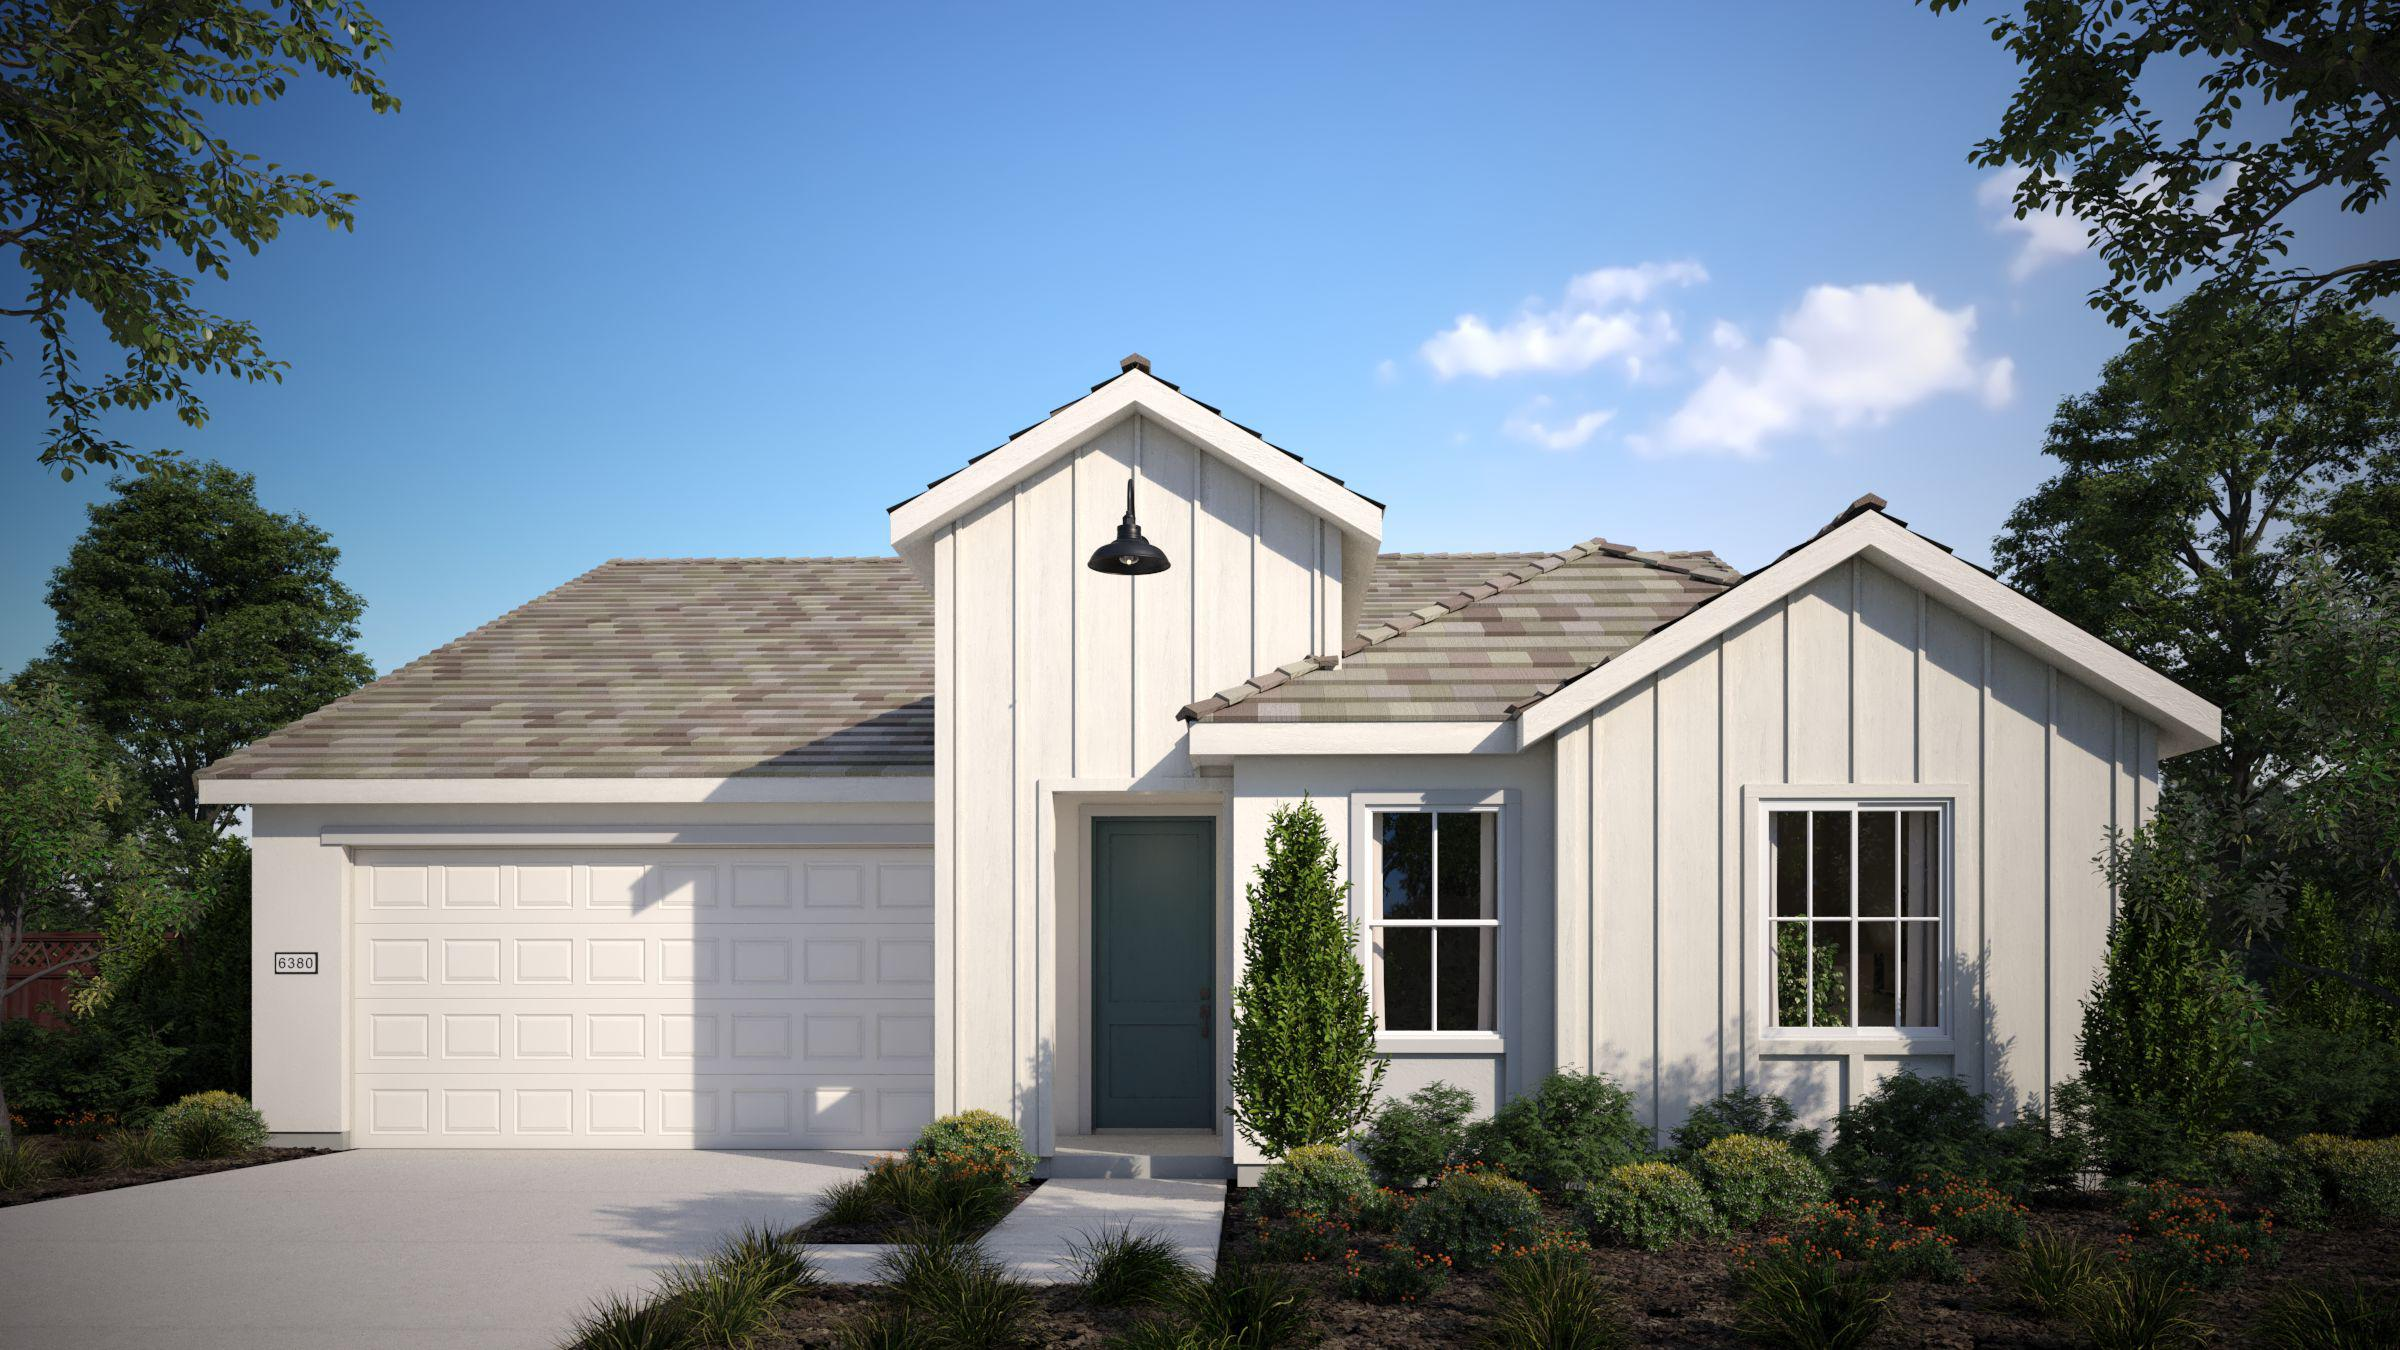 Waypointe By The New Home Company Now Previewing at River Islands